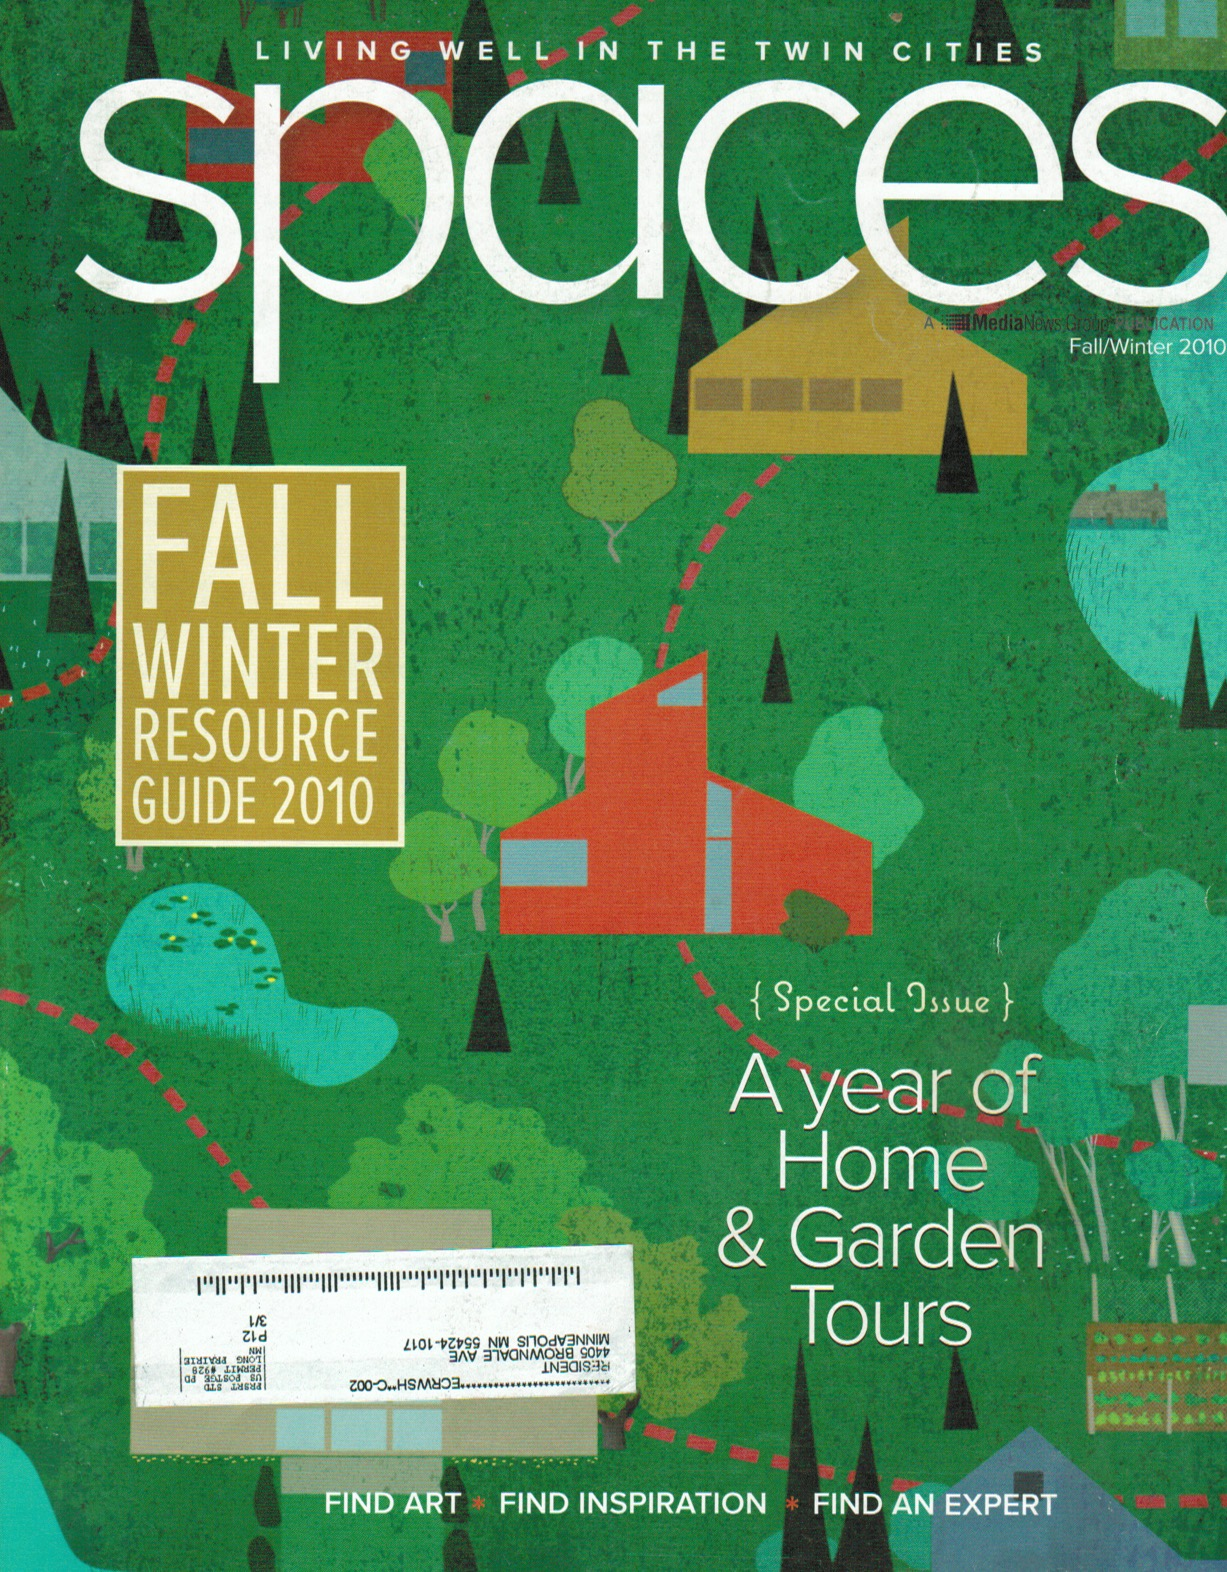 4_2010_Fall_WinterLiving Well in the twin cities Spaces.jpeg